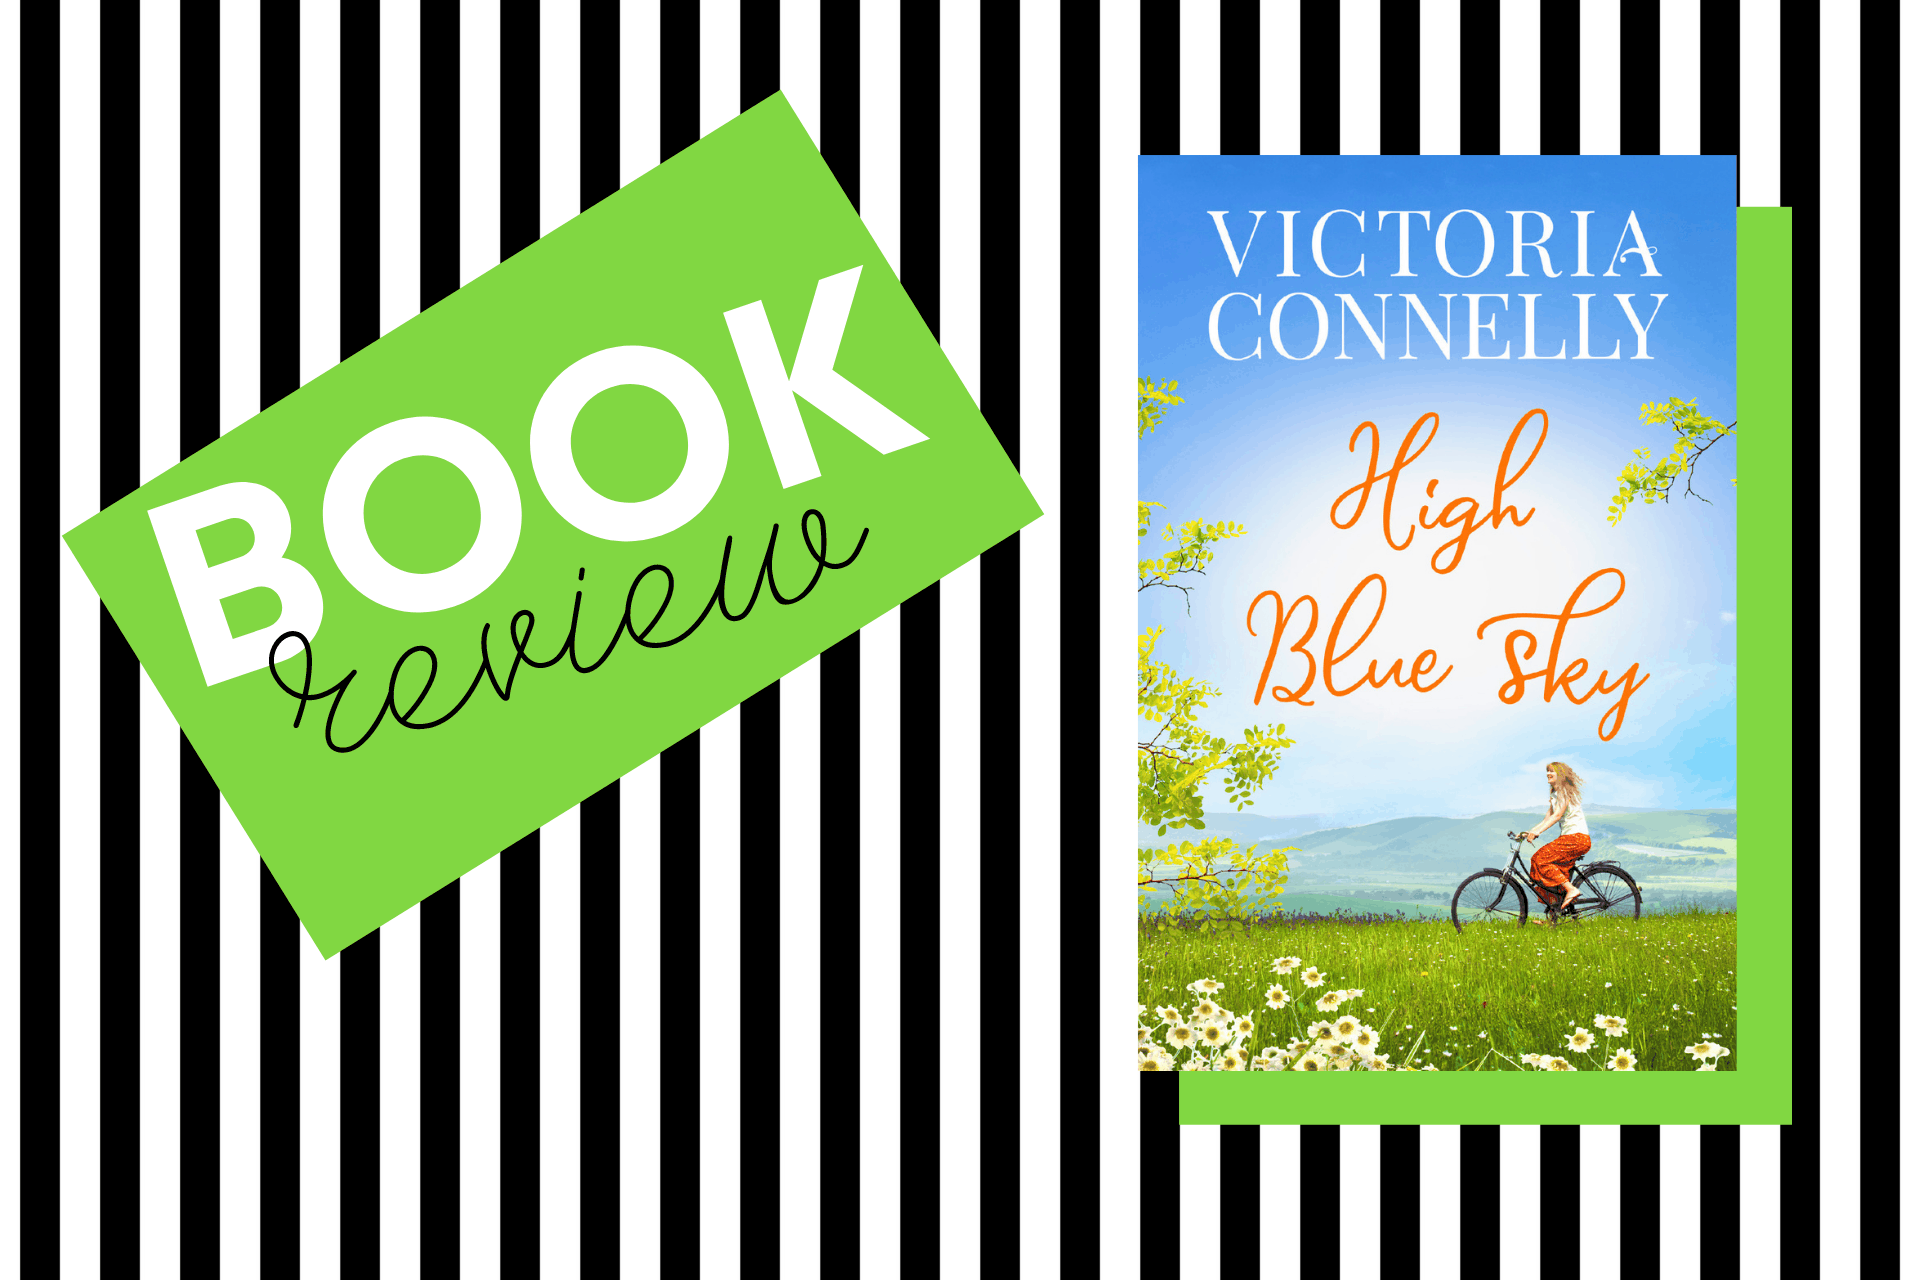 Book Review of High Blue Sky by Victoria Connelly